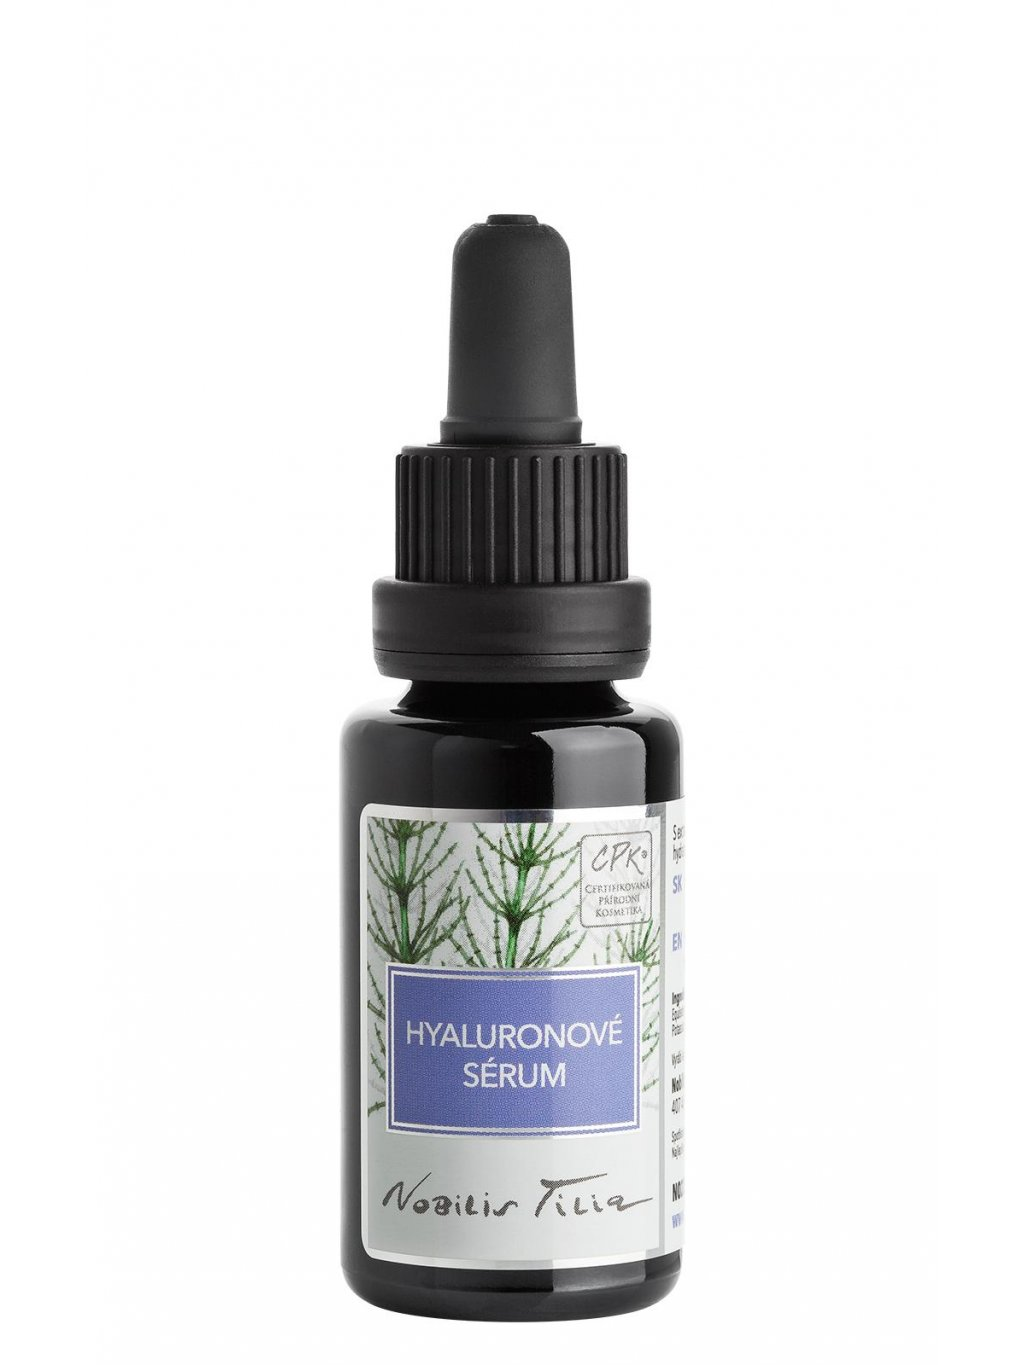 Hyaluronove serum 20 ml